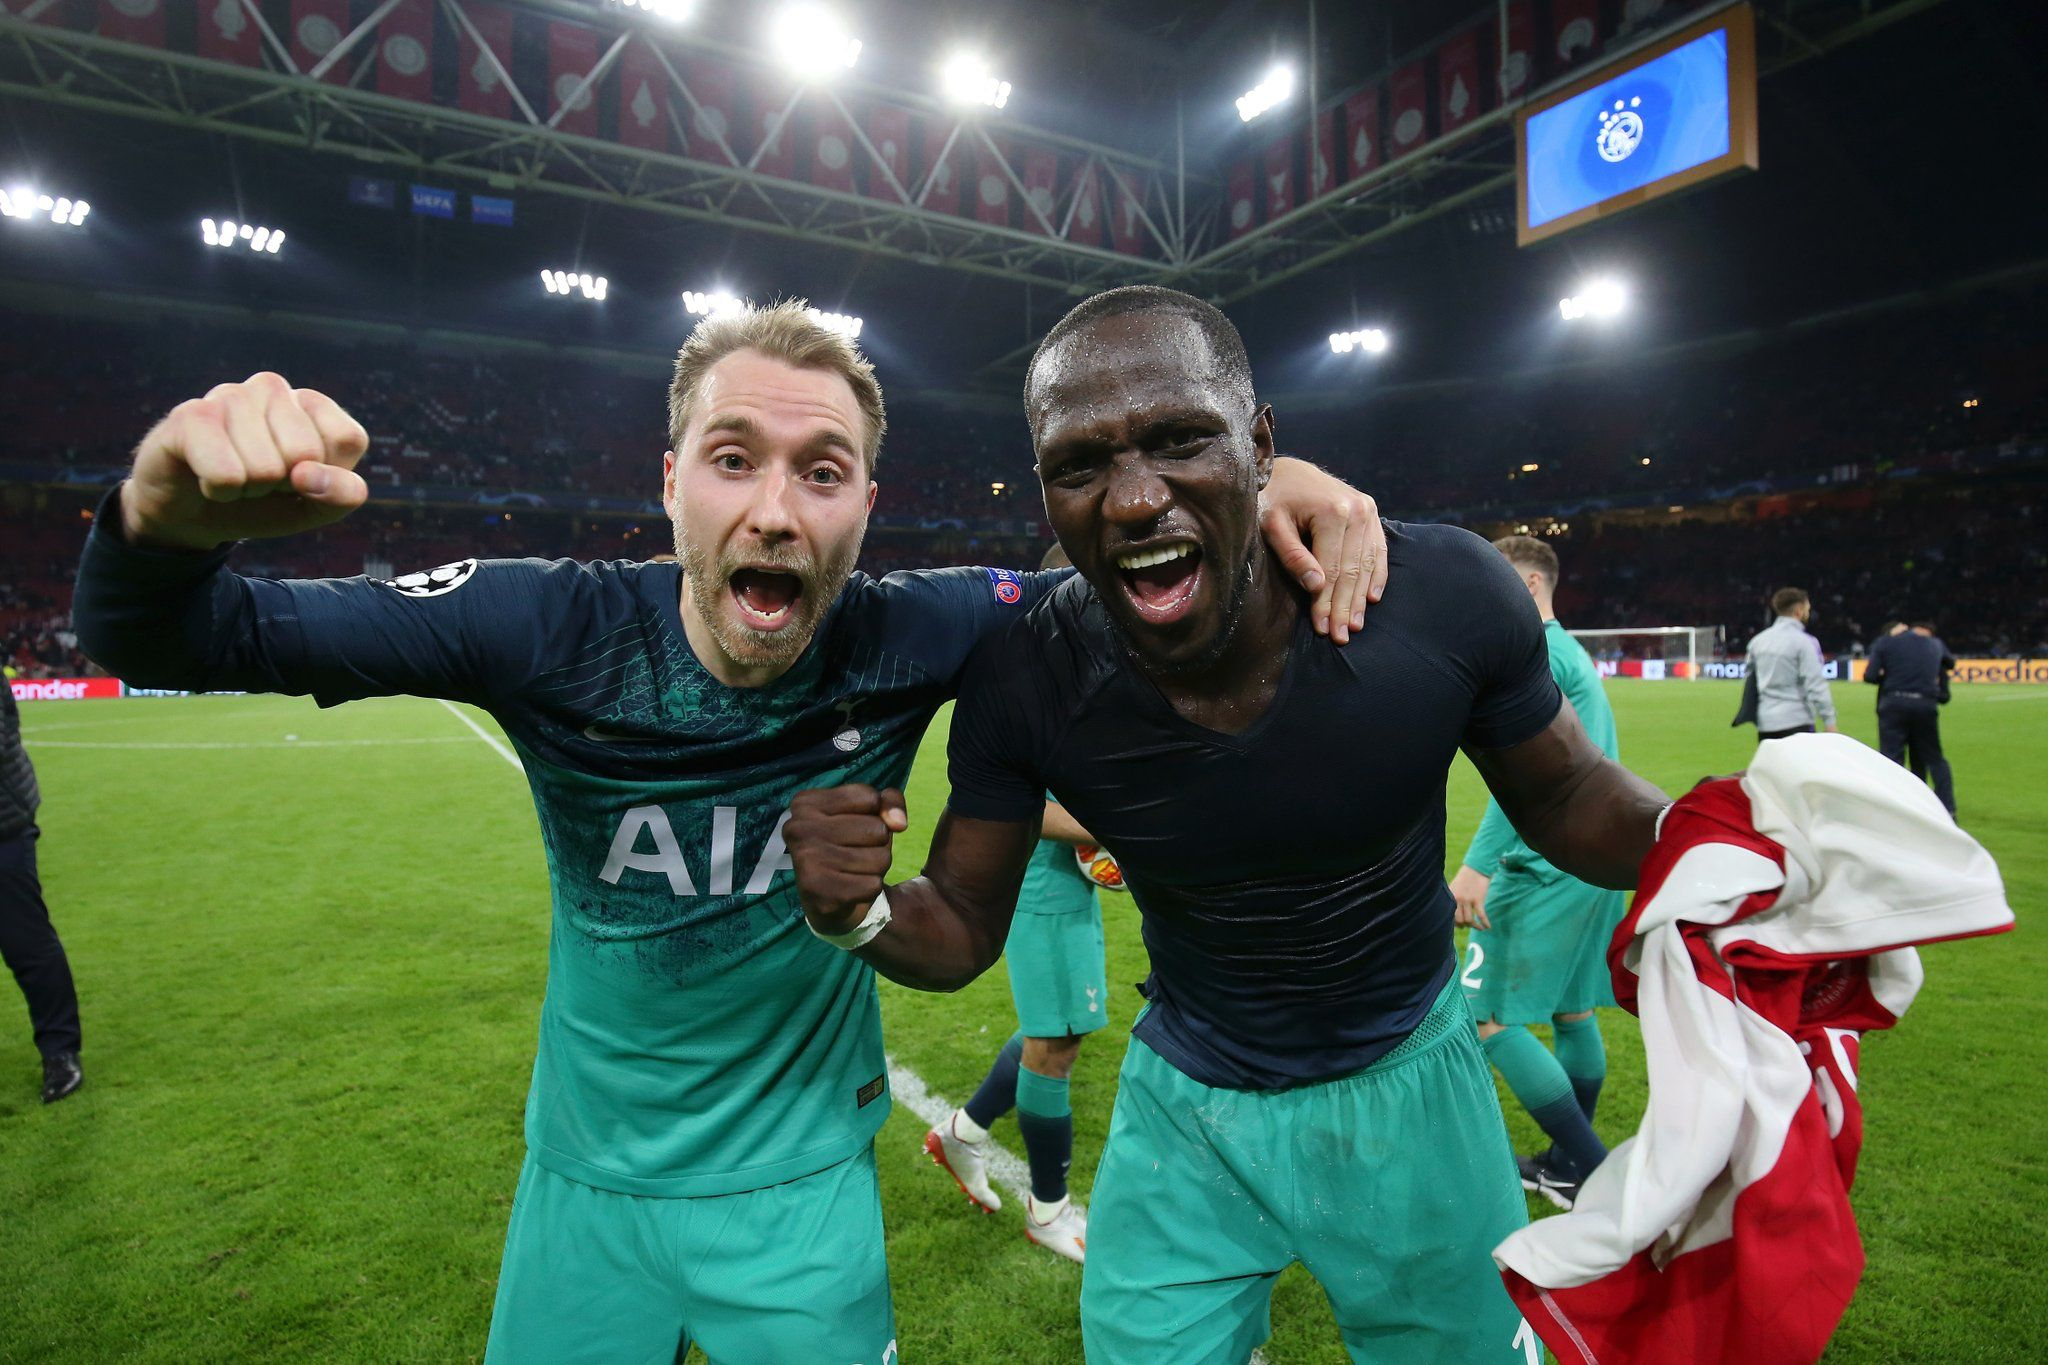 Pin on Tottenham Hotspur FC Group Fan Page on Everything